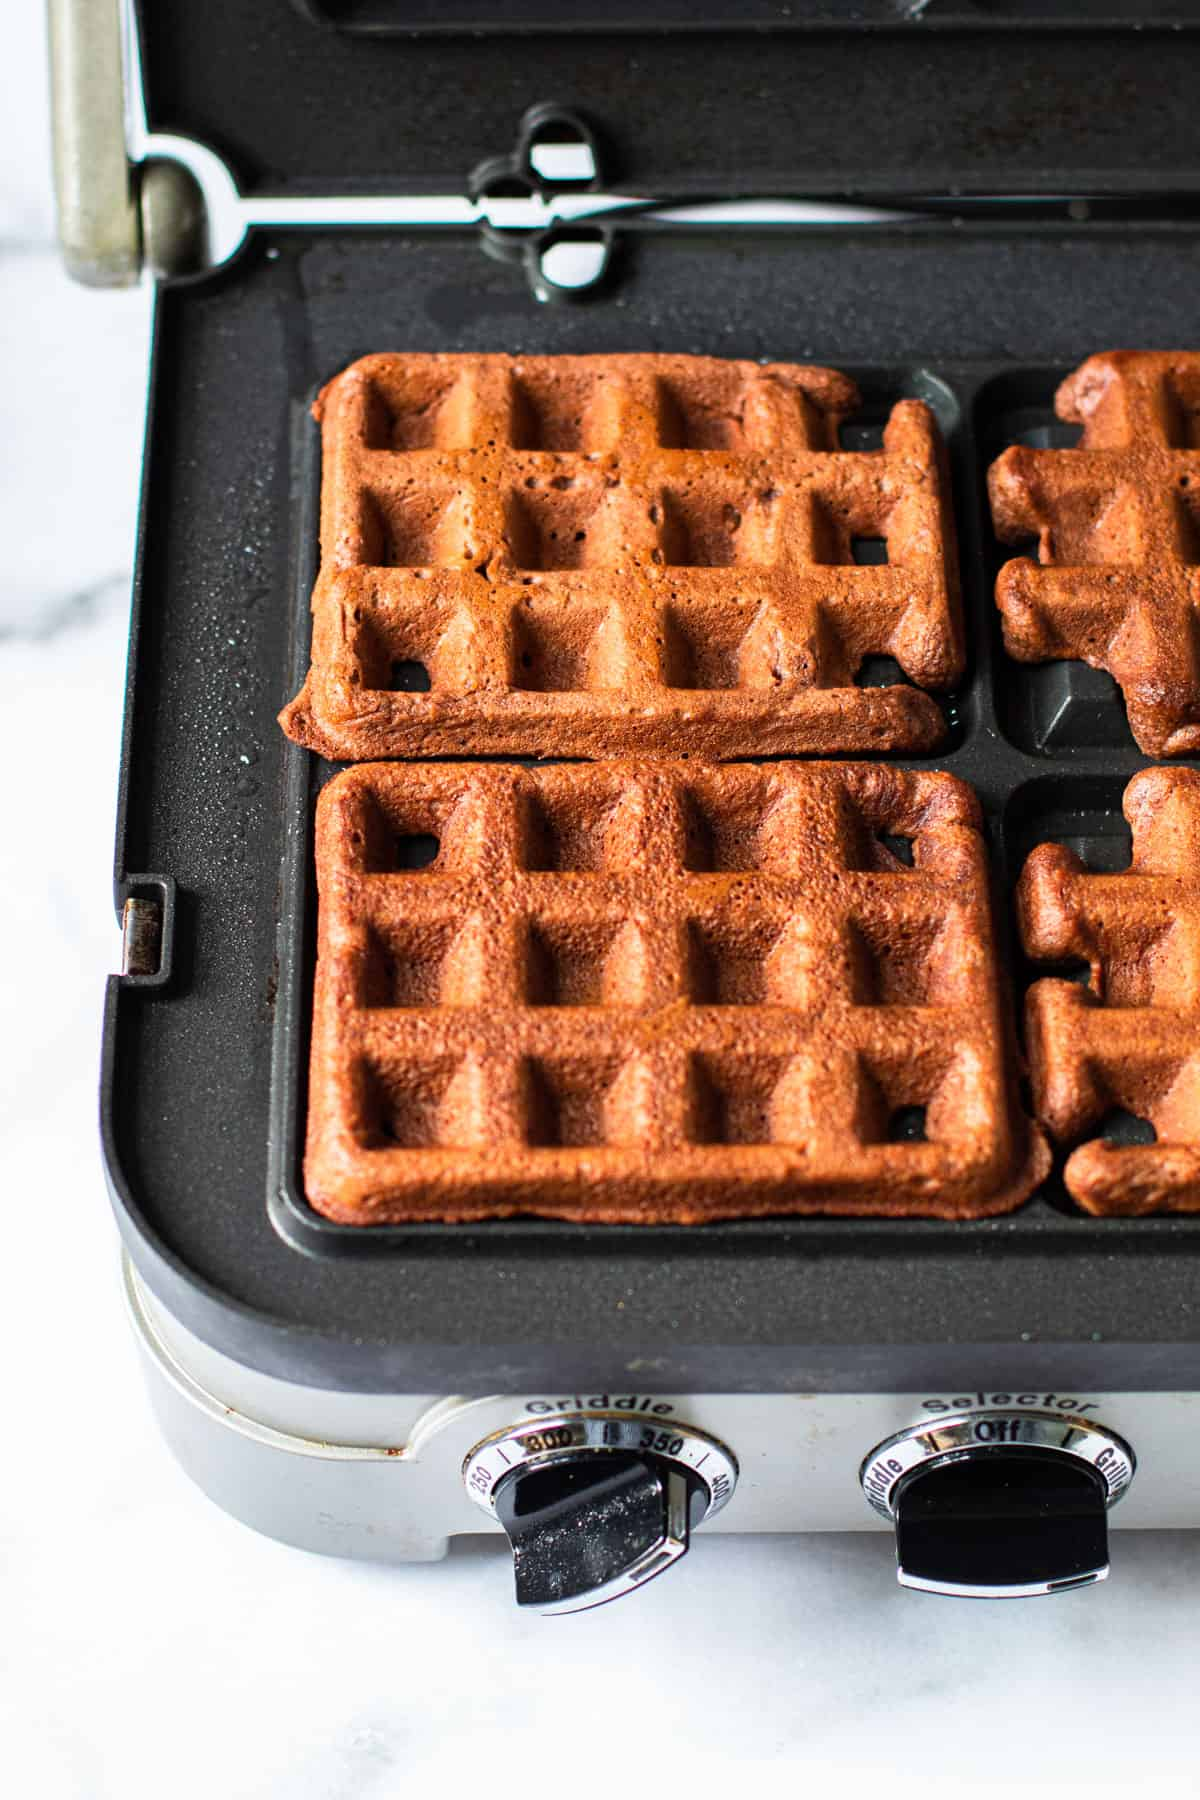 Chocolate waffles in a waffle iron.